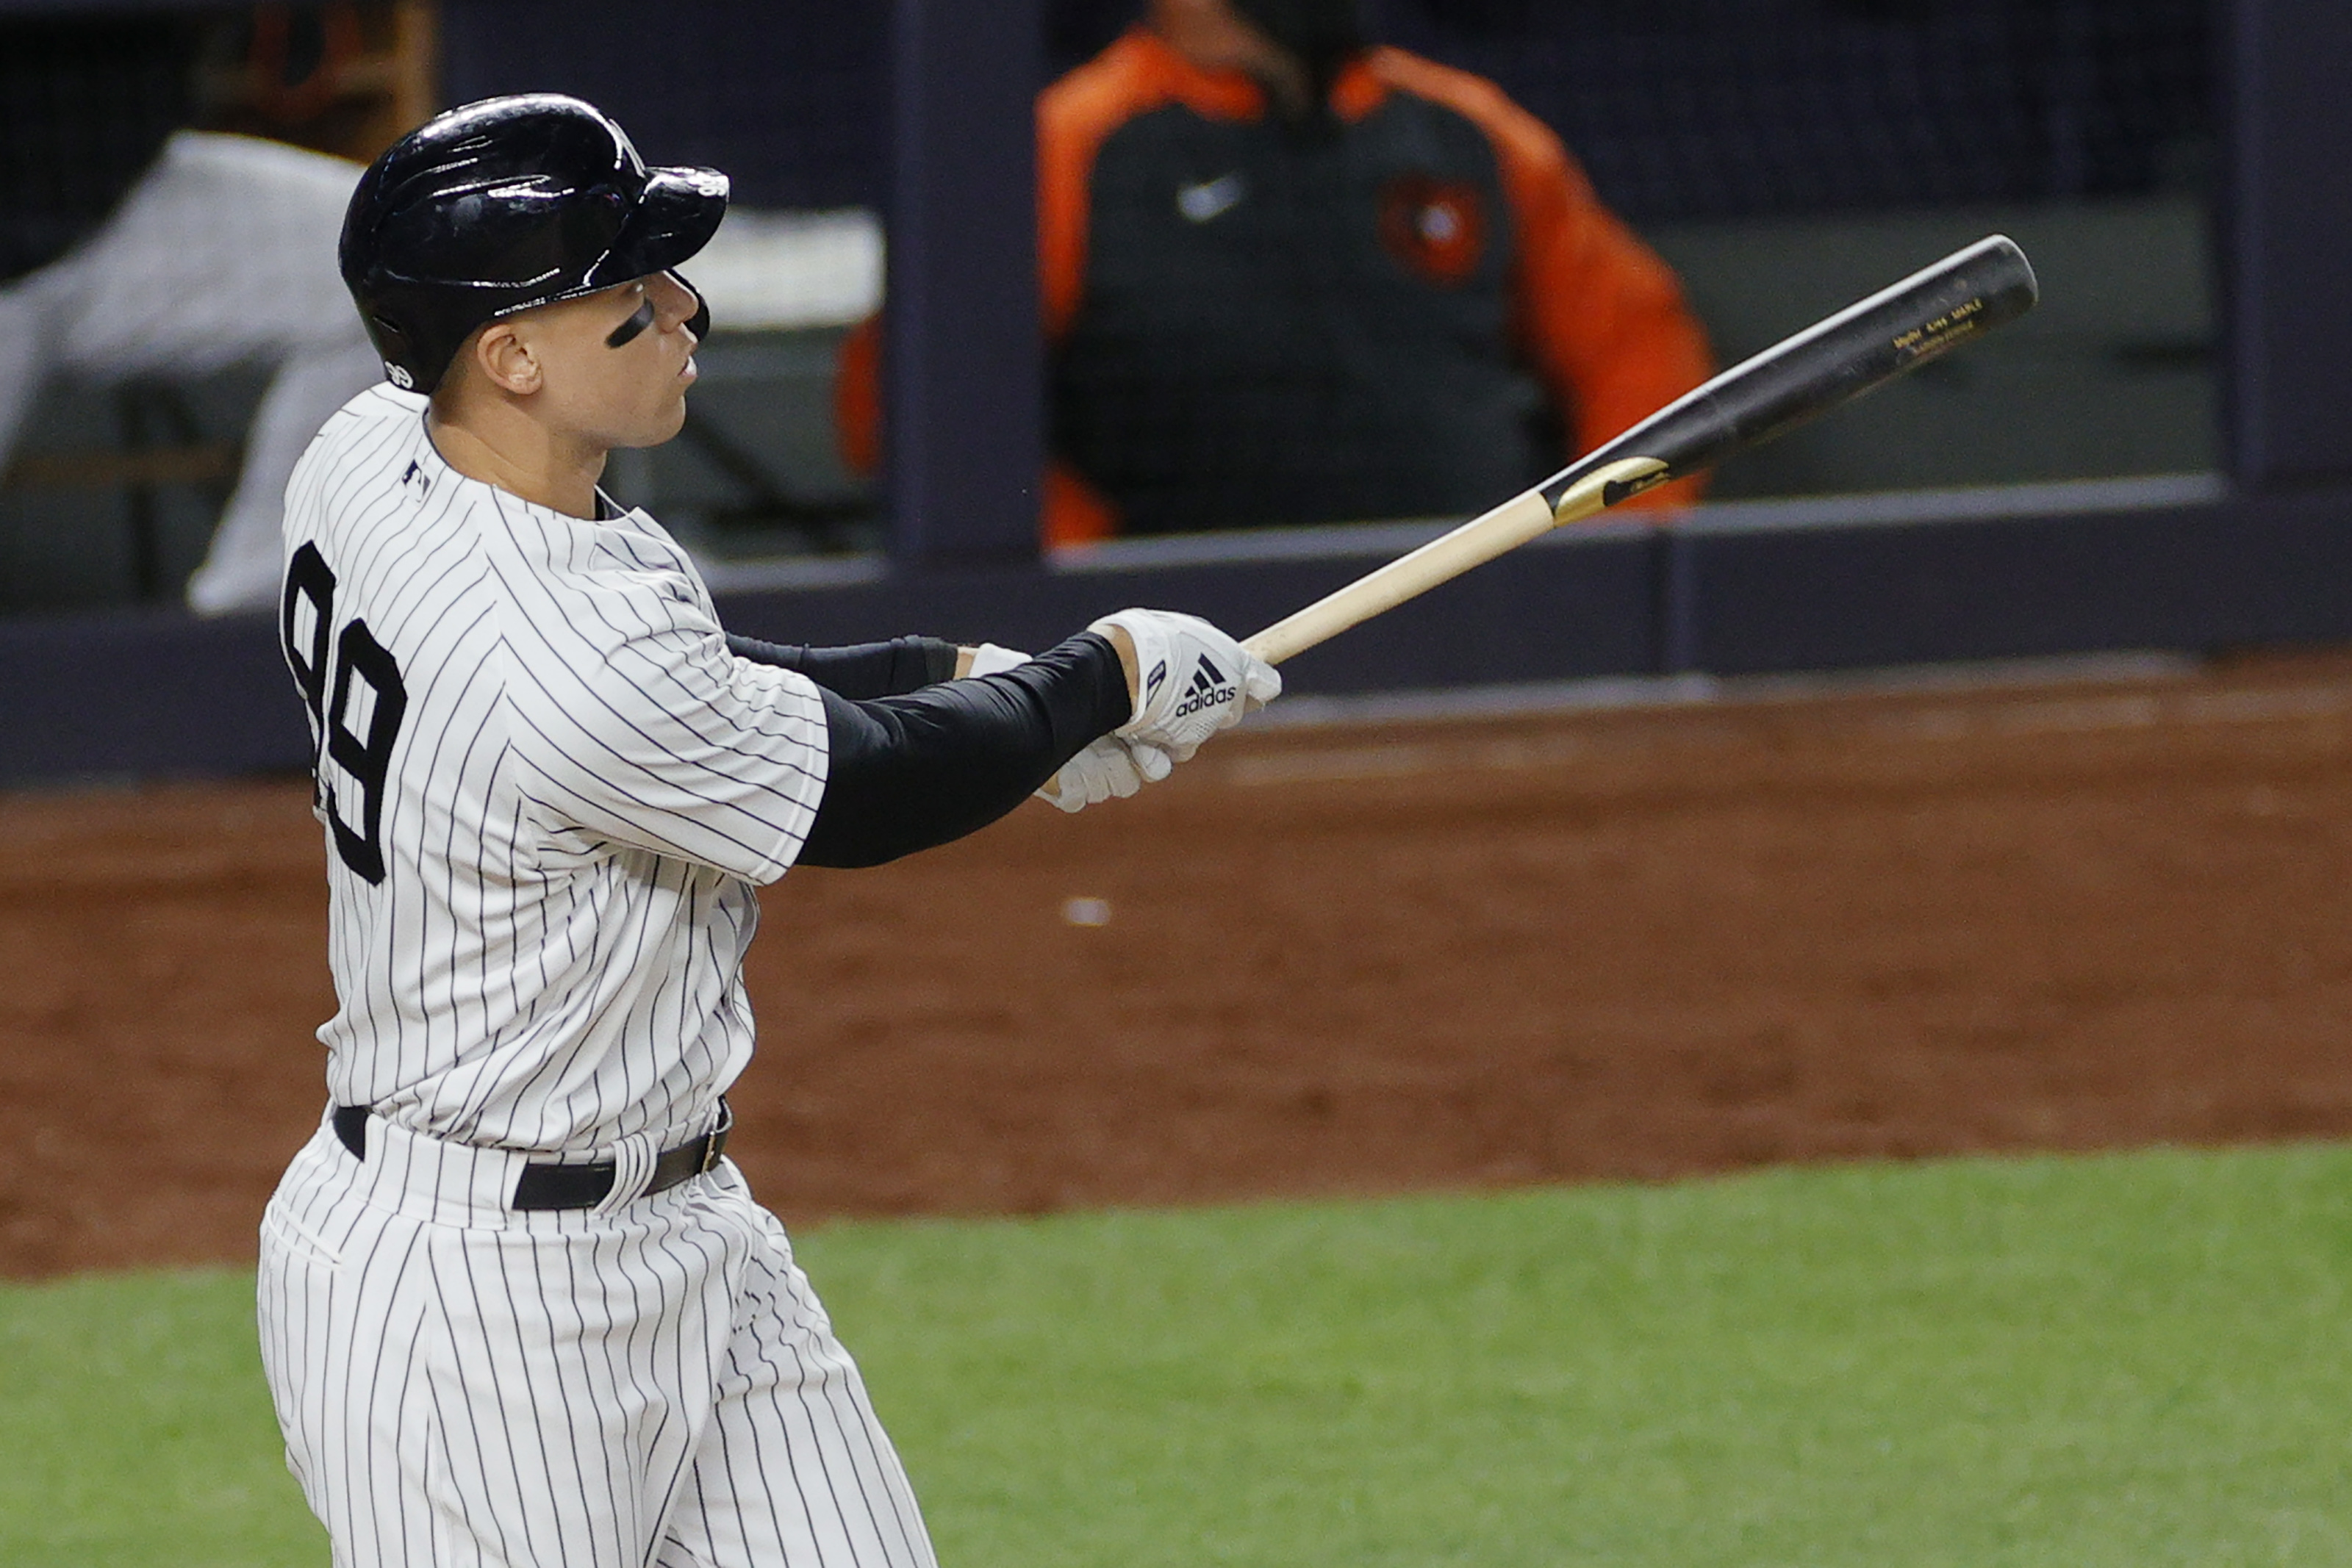 Yankees: Don't expect Aaron Judge Friday amid Boone's latest lie